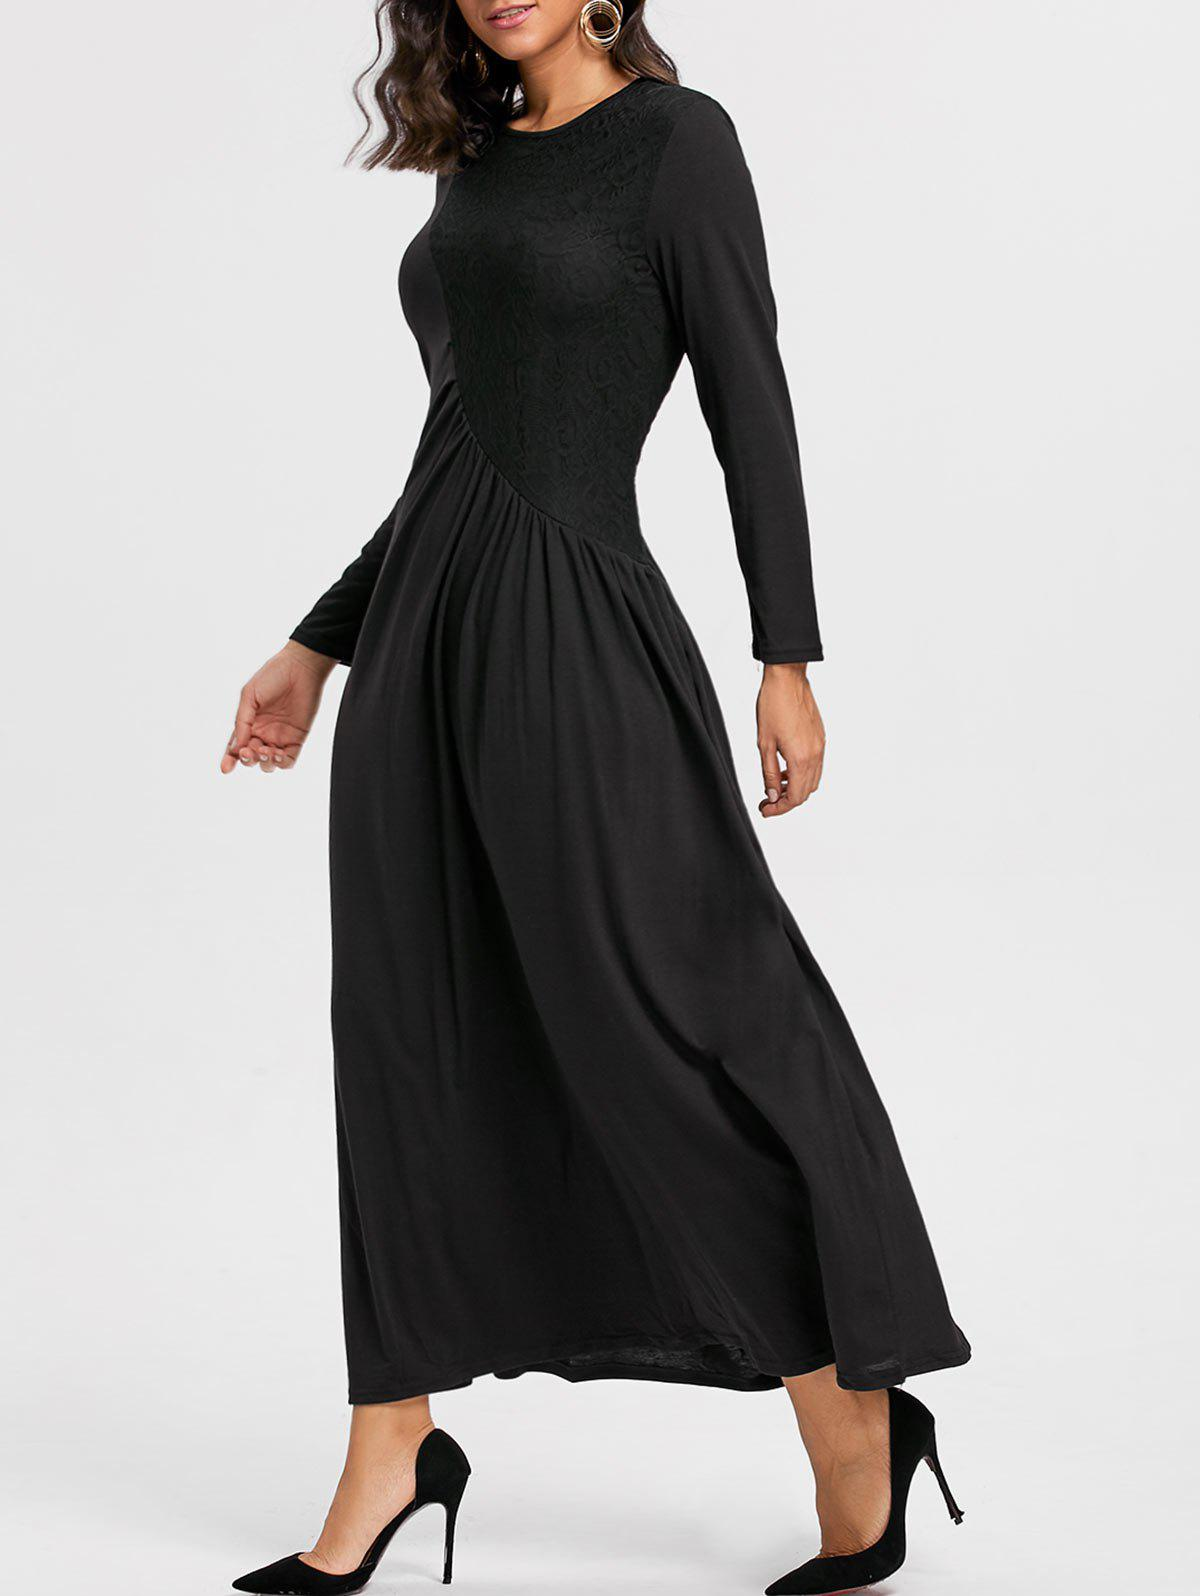 Long Sleeve Ruched Lace Insert Maxi DressWOMEN<br><br>Size: XL; Color: BLACK; Style: Brief; Material: Cotton,Polyester; Silhouette: A-Line; Dresses Length: Floor-Length; Neckline: Round Collar; Sleeve Length: Long Sleeves; Pattern Type: Patchwork,Solid Color; With Belt: No; Season: Fall,Spring; Weight: 0.5800kg; Package Contents: 1 x Dress;